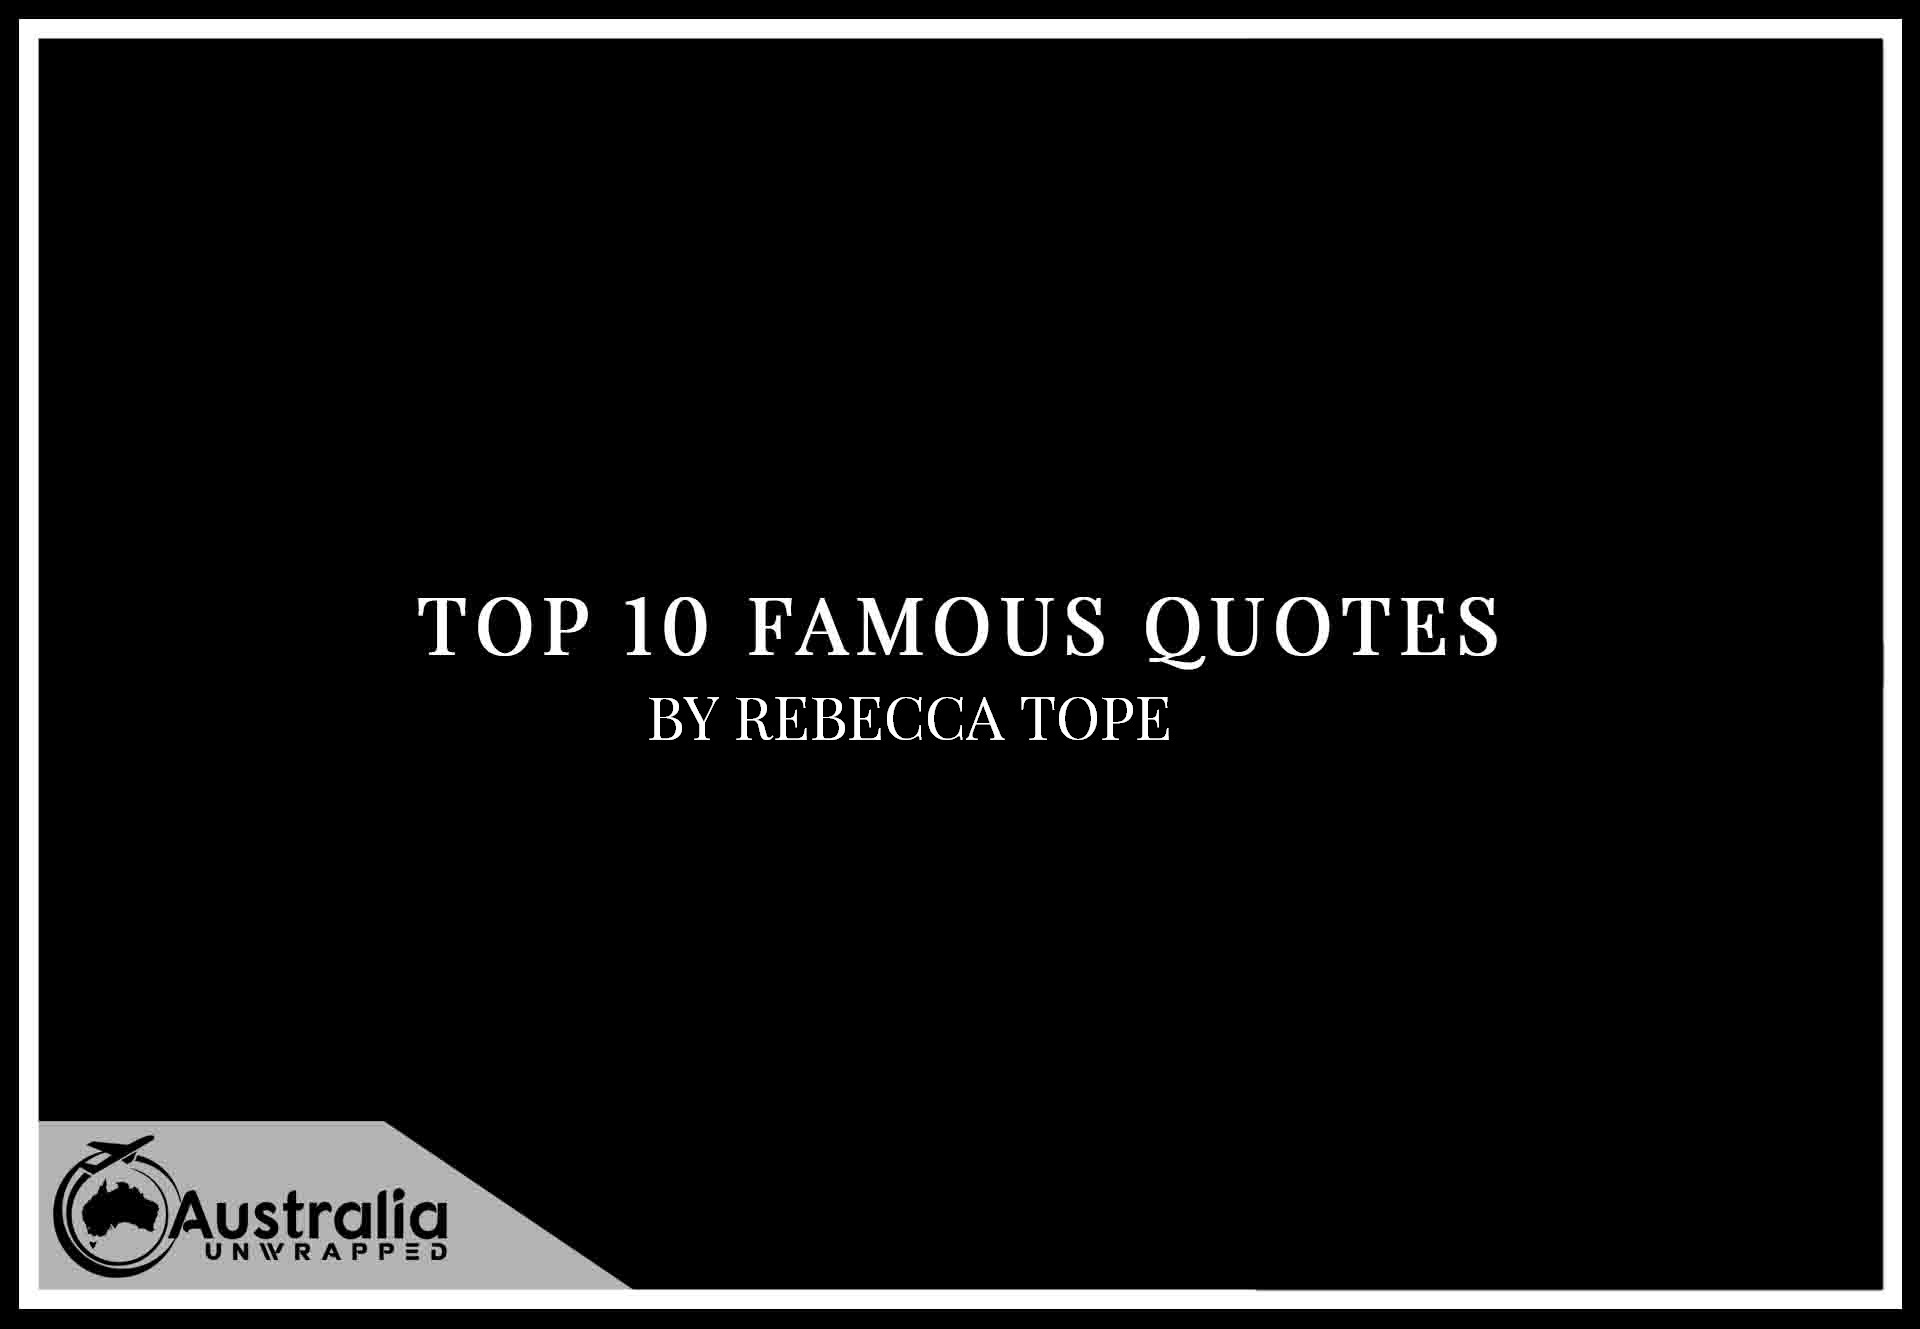 Top 10 Famous Quotes by Author Rebecca Tope